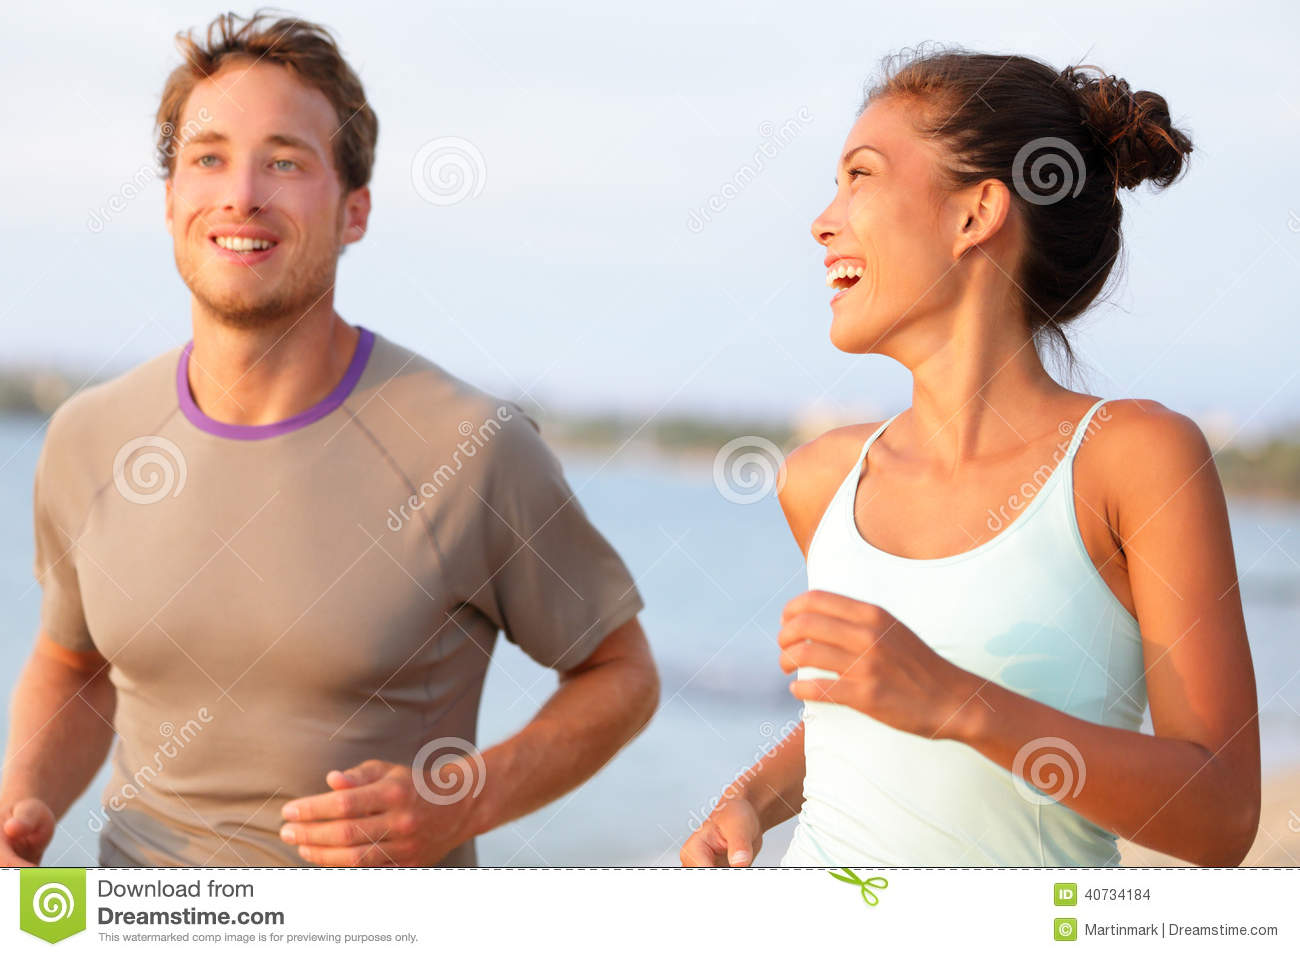 Jogging Fitness Young People Running Happy Smiling Stock Photo - Image ...